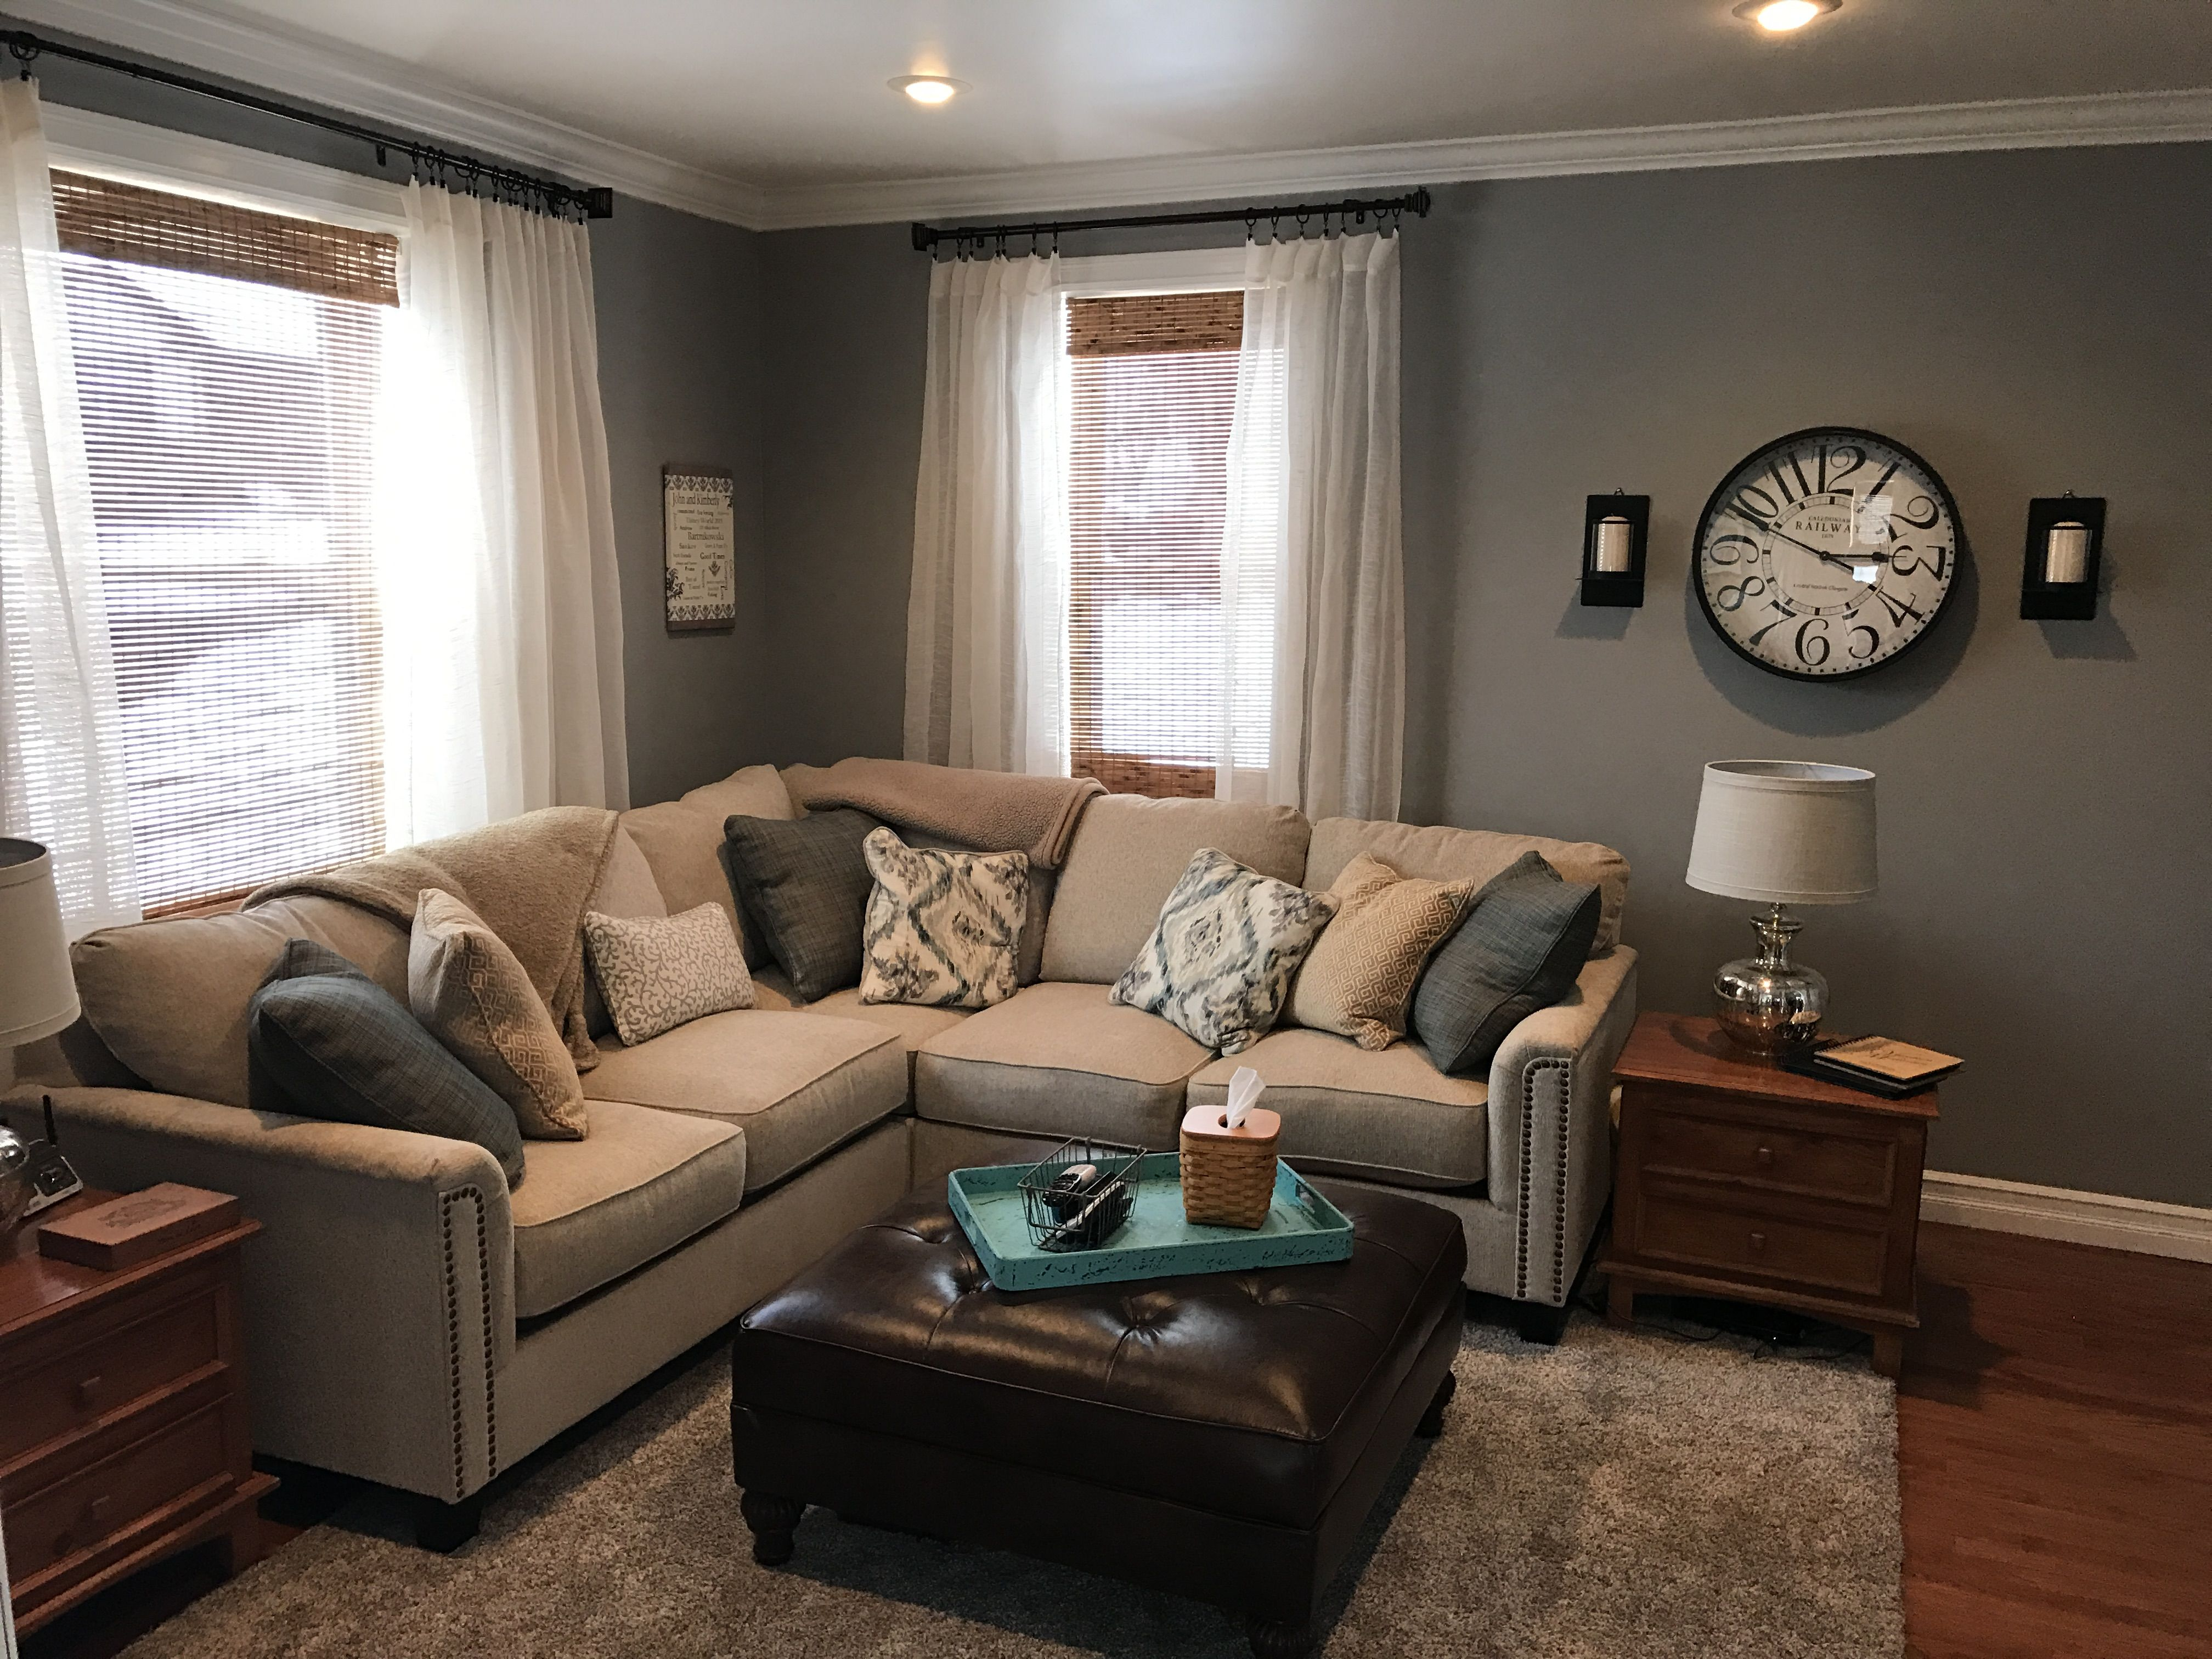 Behr Downtown Gray, cream couch | family room | Pinterest ...